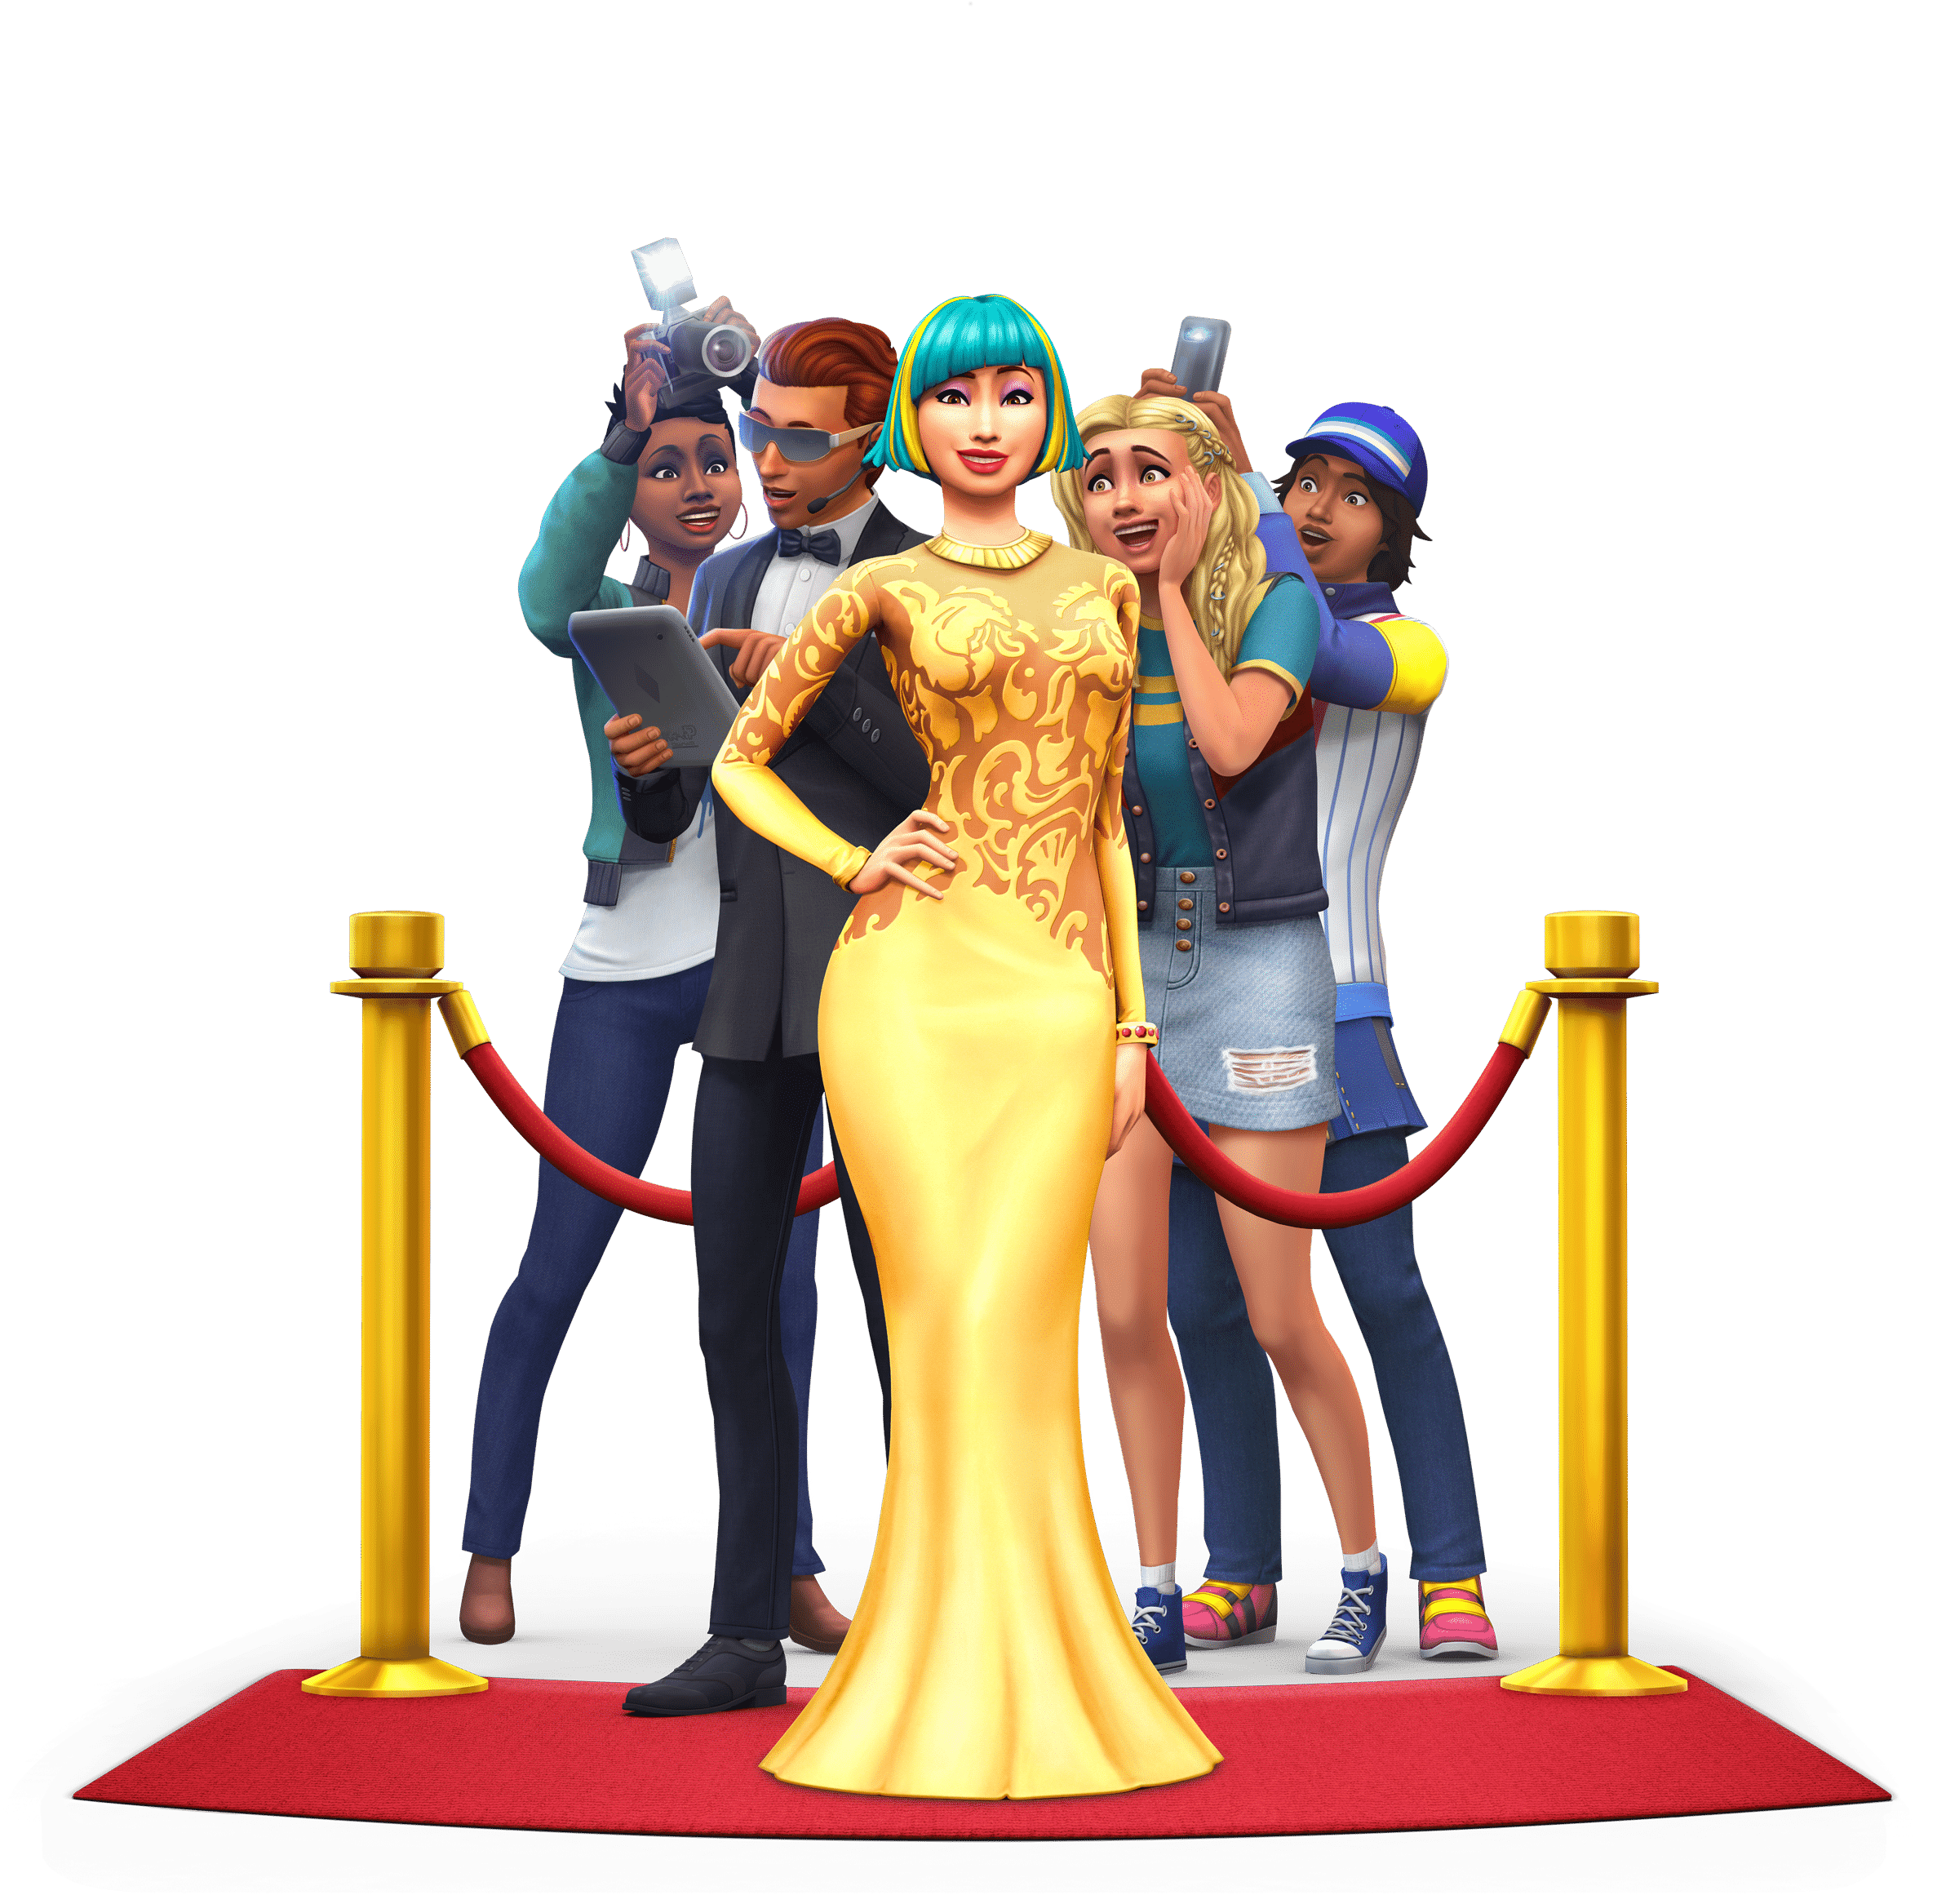 The Sims 4 Get Famous: Official Assets (Boxart, Logo ...